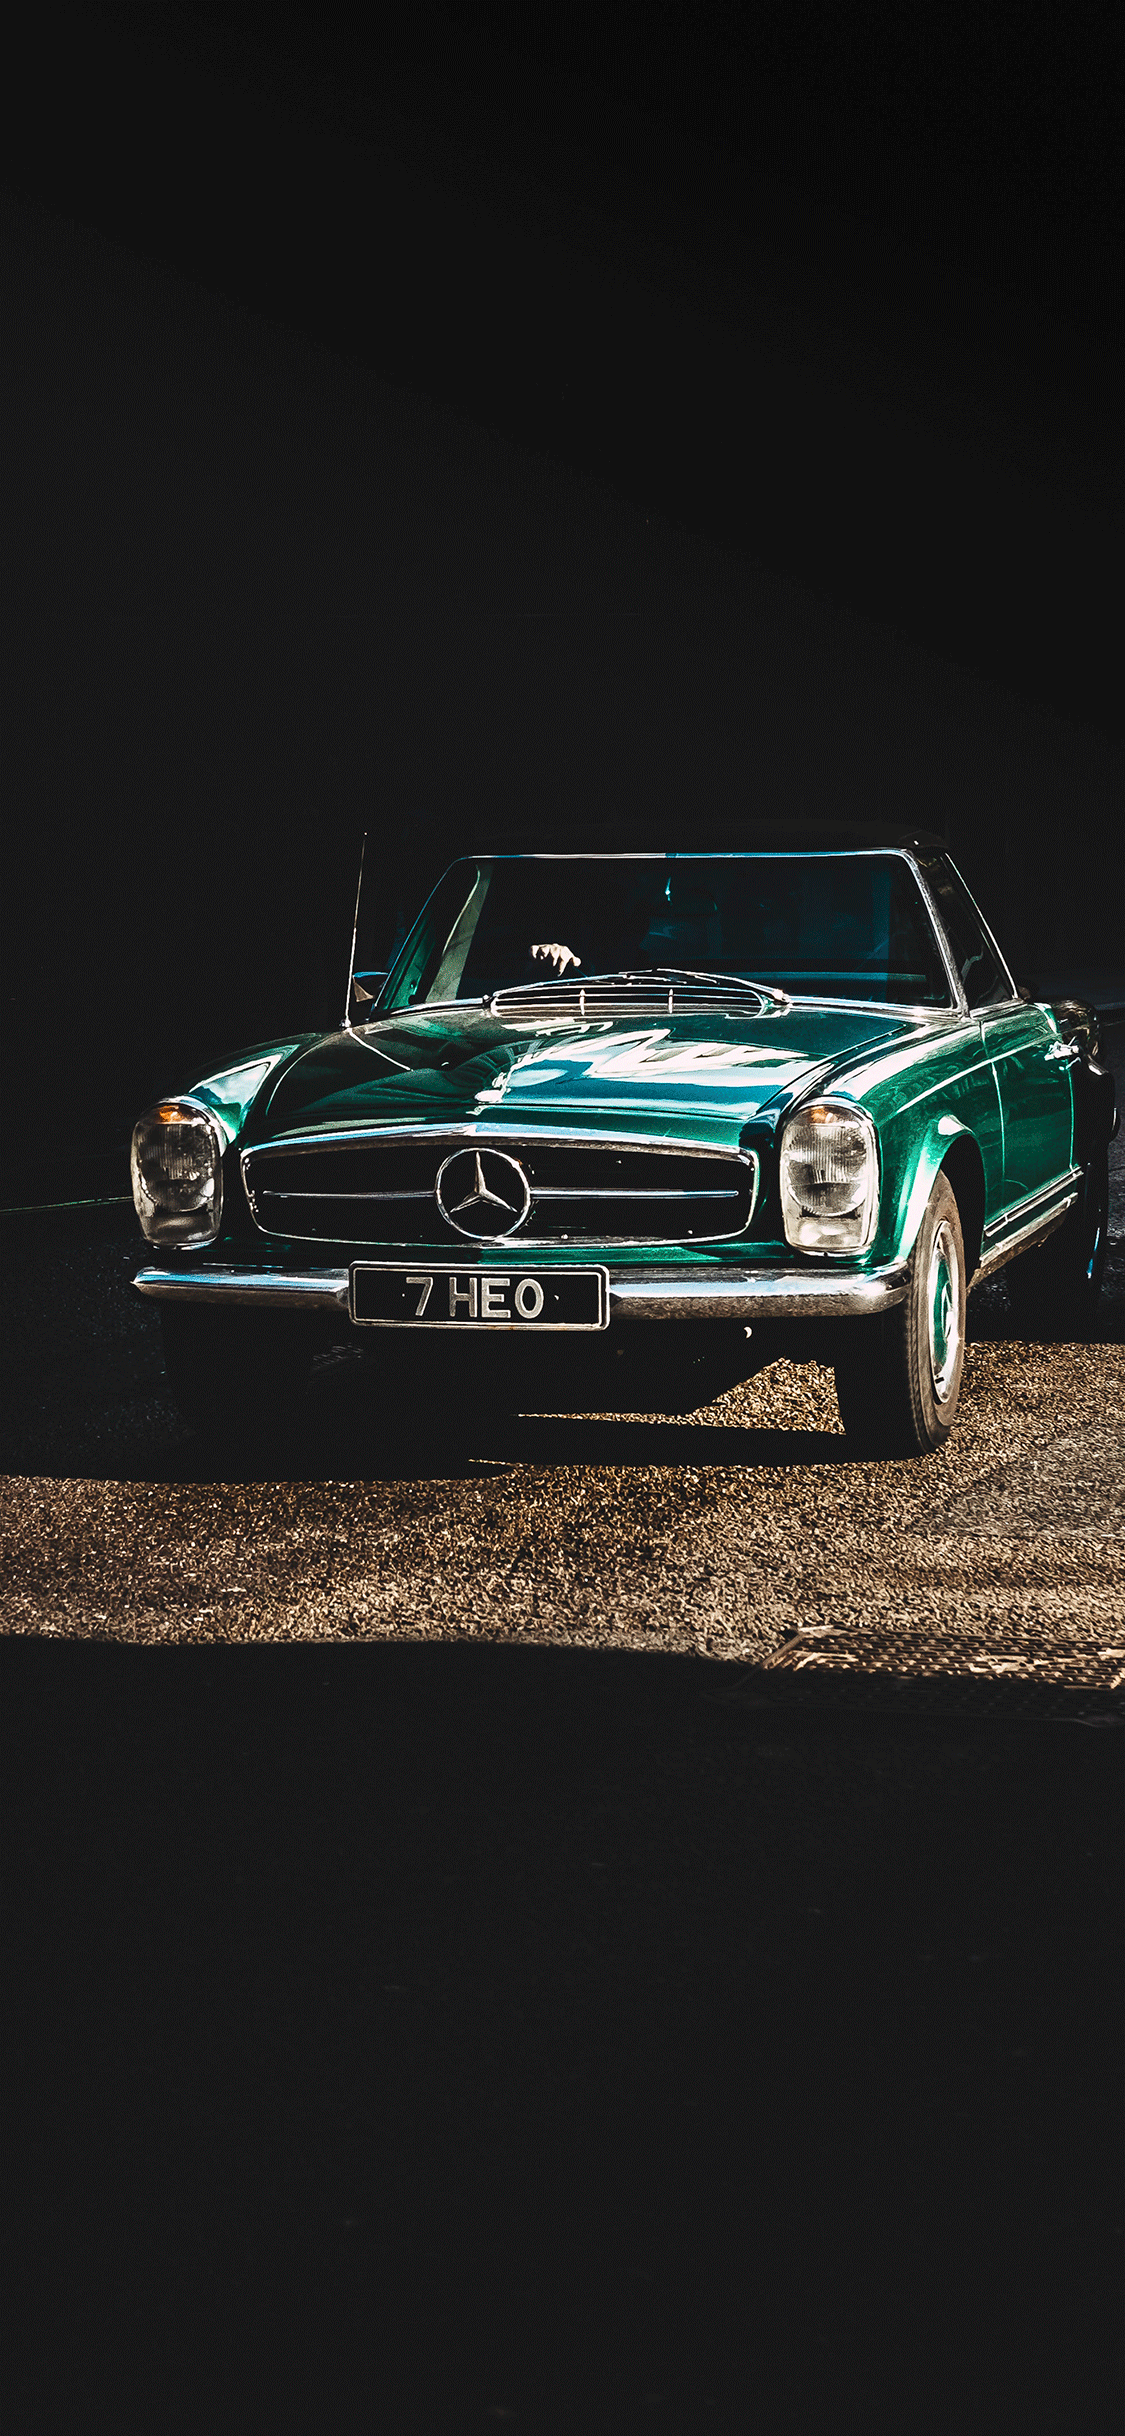 Vintage Car Wallpaper For Iphone X 8 7 6 Free Download On